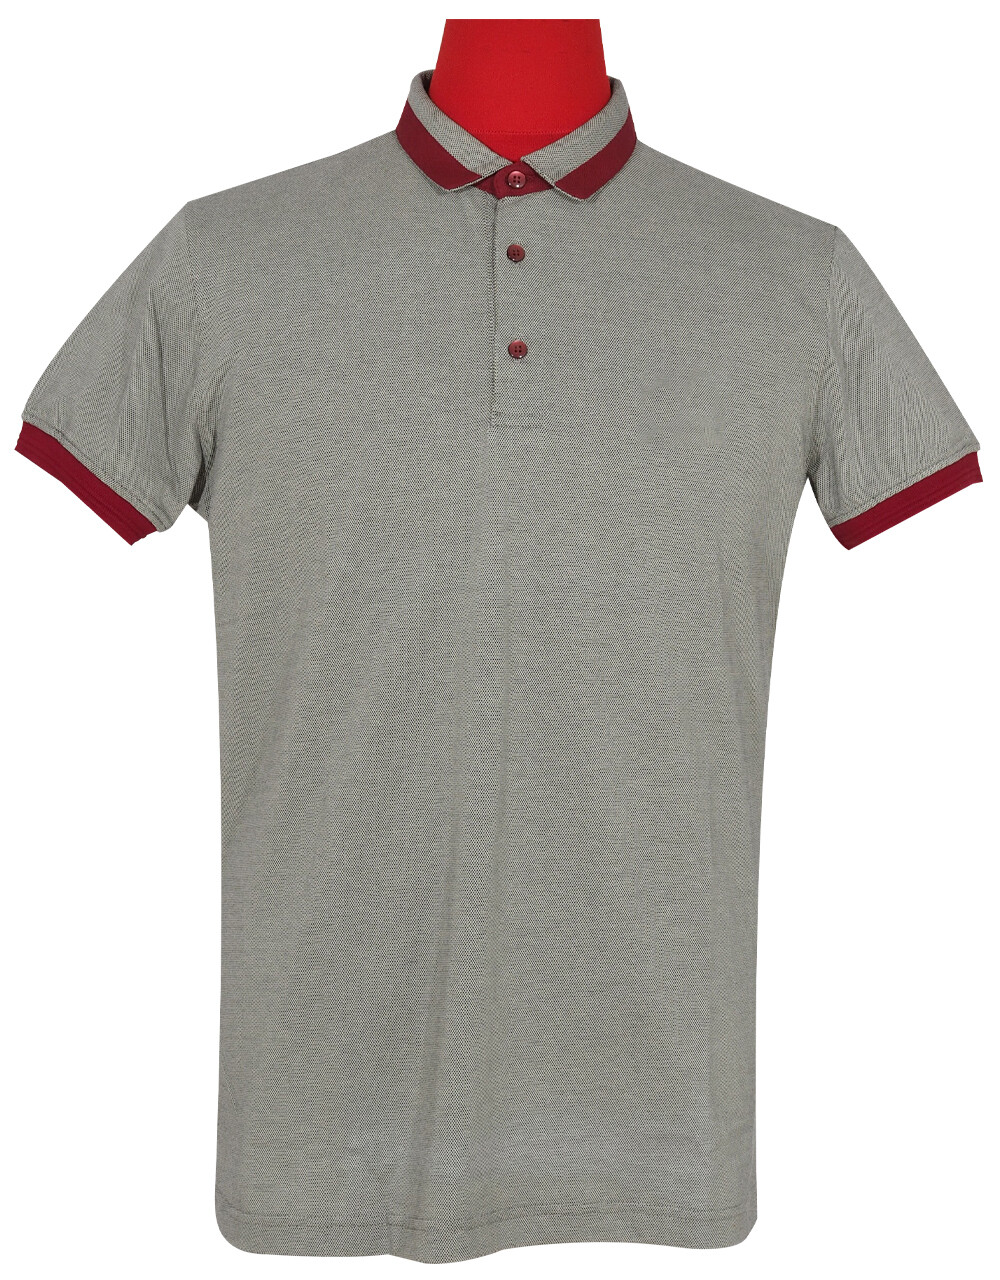 Polo Shirt Fabric Cool Plus Short Sleeve Colour Grey & Burgundy Polo Shirt.